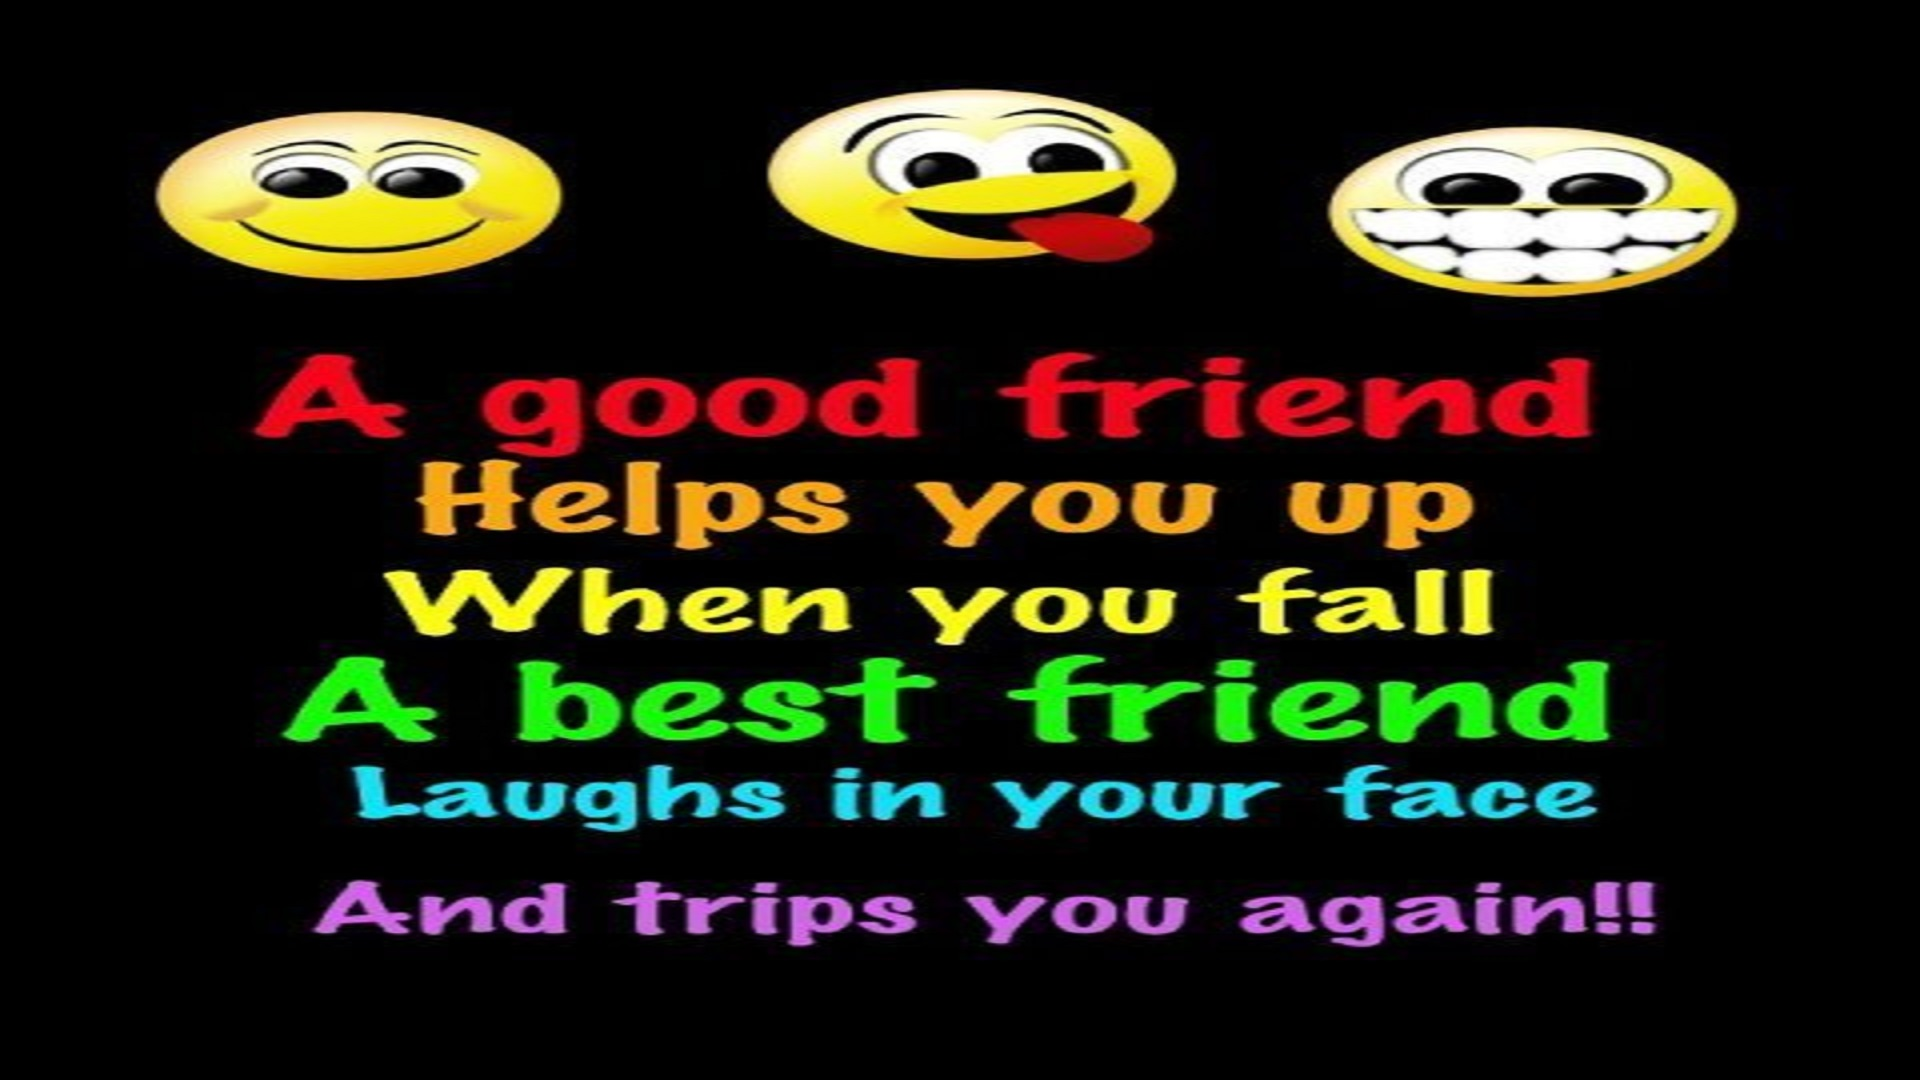 Funny Life Quotes Bestfriendsfriendsfunnylifequotesfreehdwallpapers  Hd